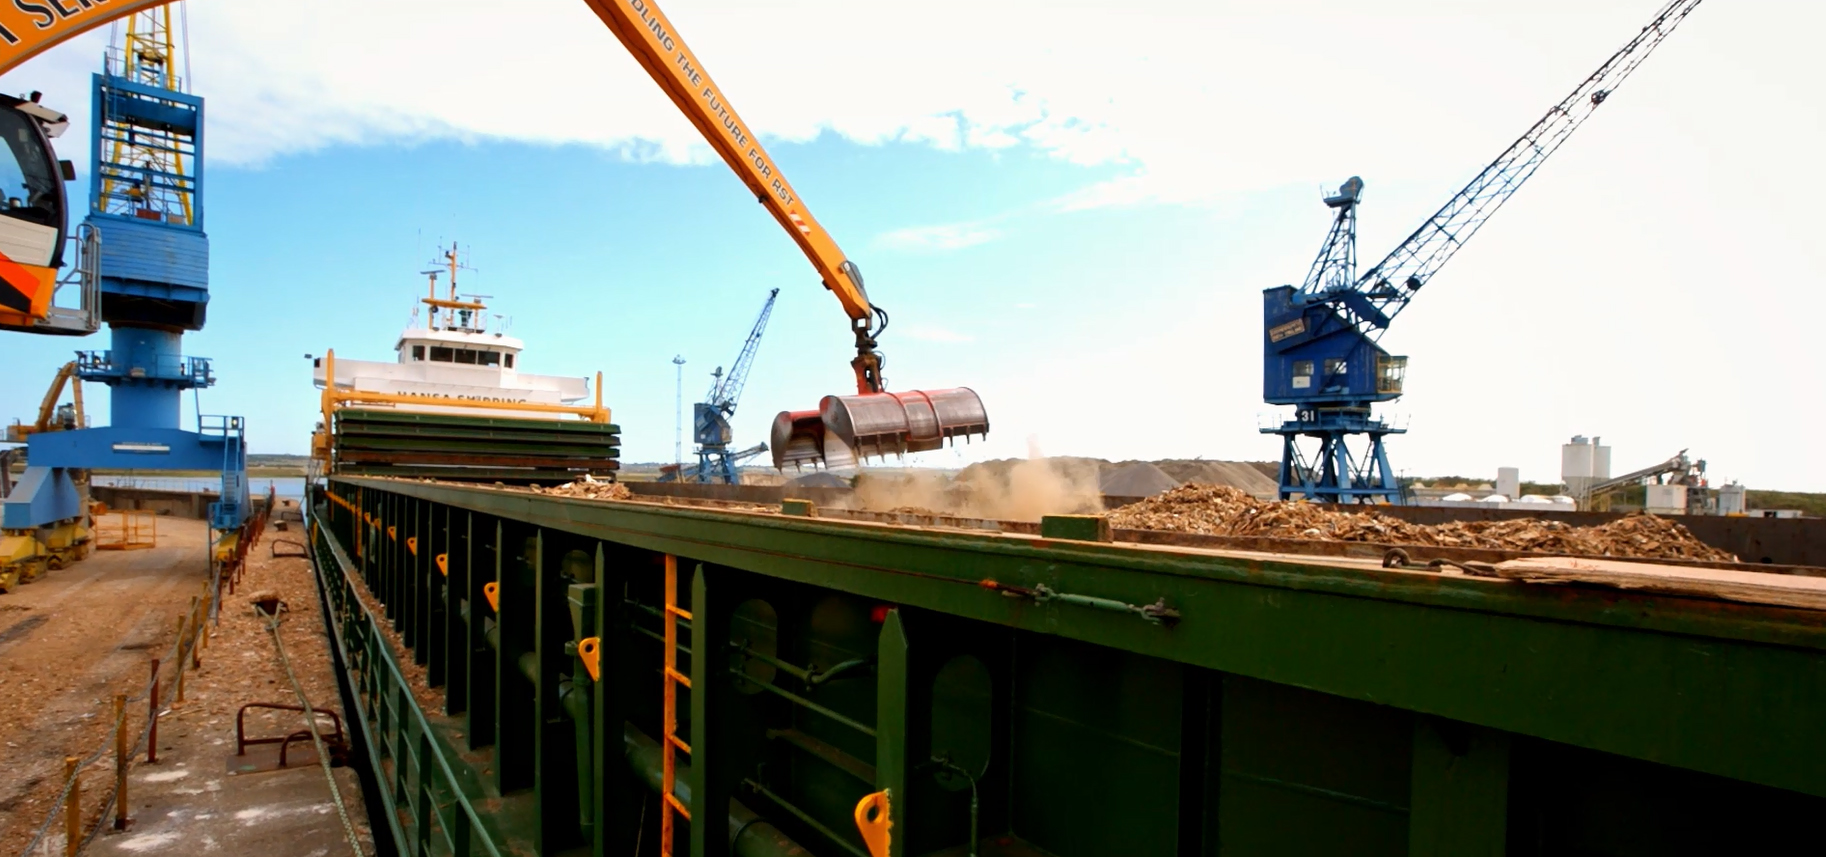 Recycling wood for export by sea to Europe for use in producing heat and energy